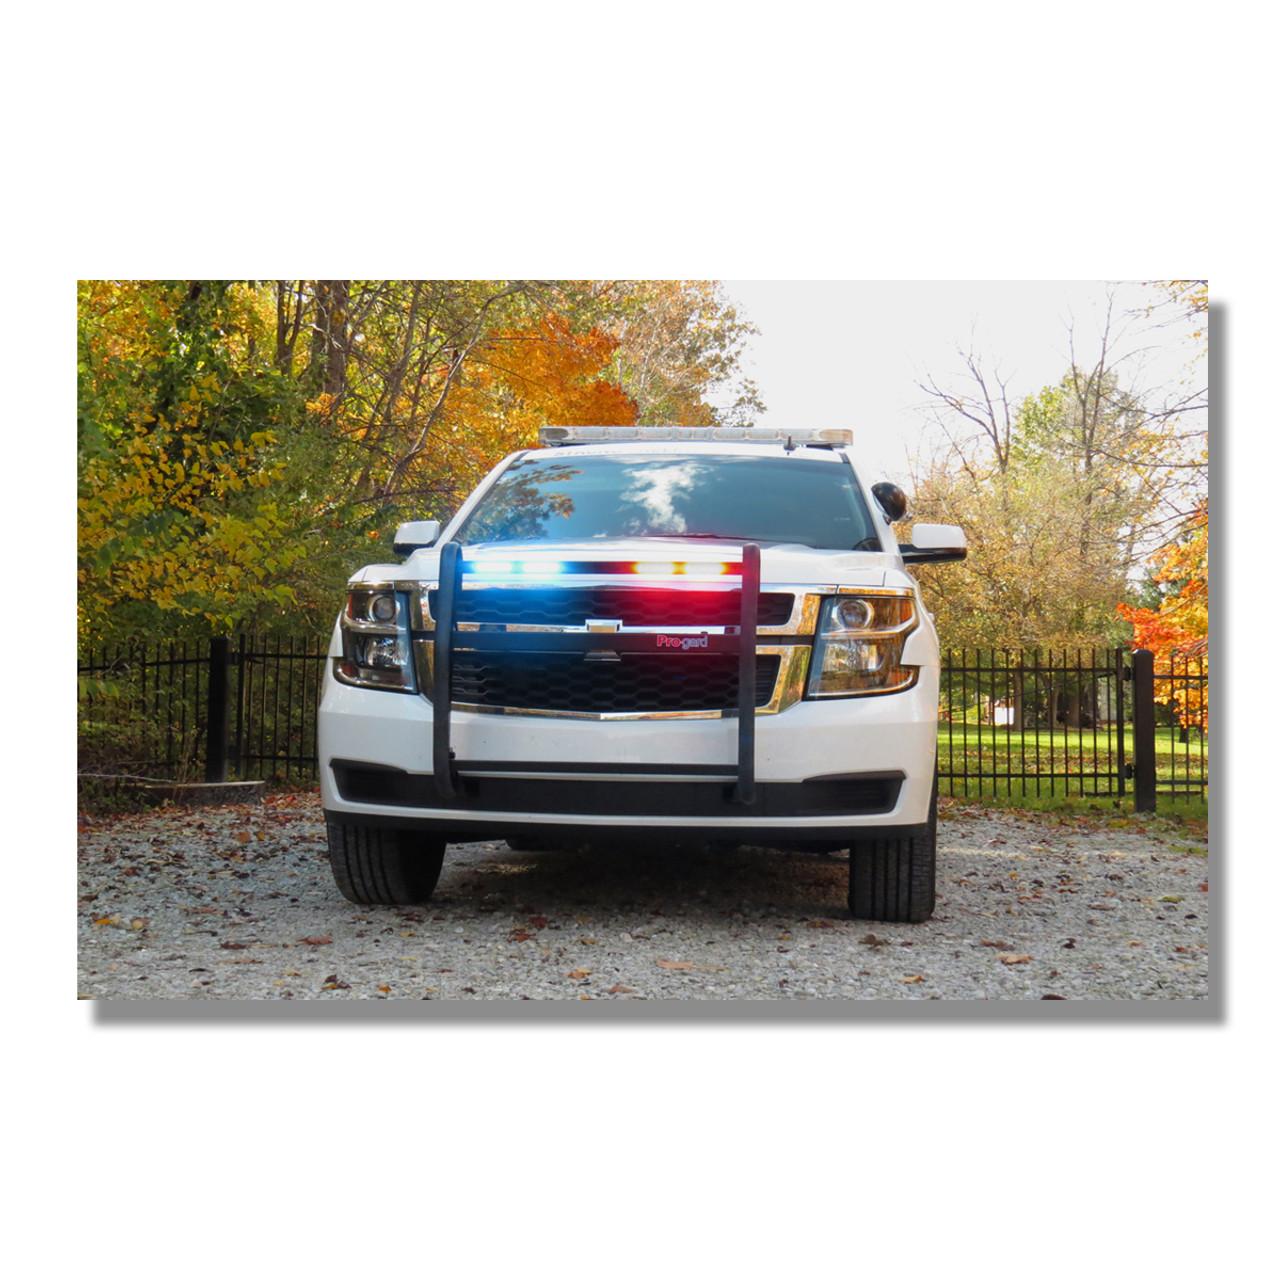 Pro-Gard Police LED Push Bumper Grill Guard for Cars SUVs Trucks using Whelen IONs